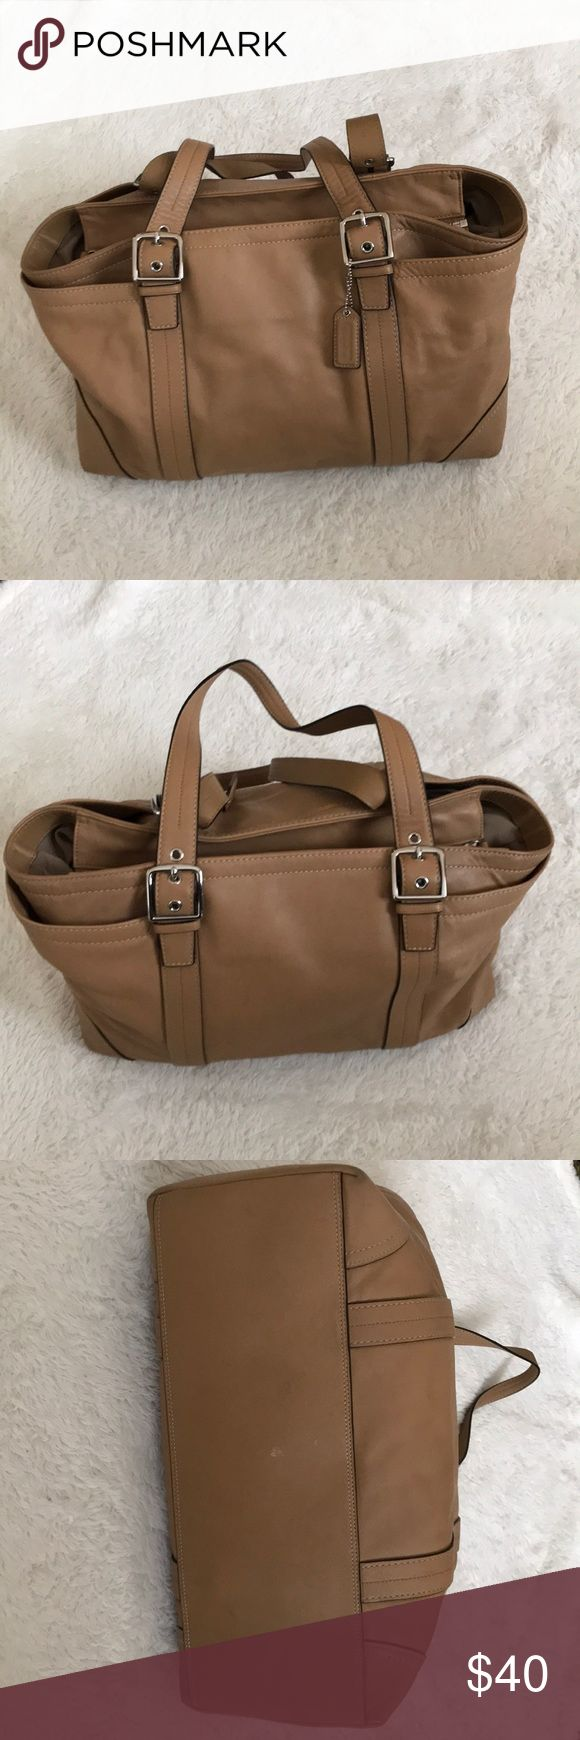 Coach leather bag. Coach leather bag. It's bigger than most medium-sized bags. It has some signs of wear in the bottom. No sling strap to go with it. Zipper opens all the way like a jacket's zipper. Coach Bags Shoulder Bags